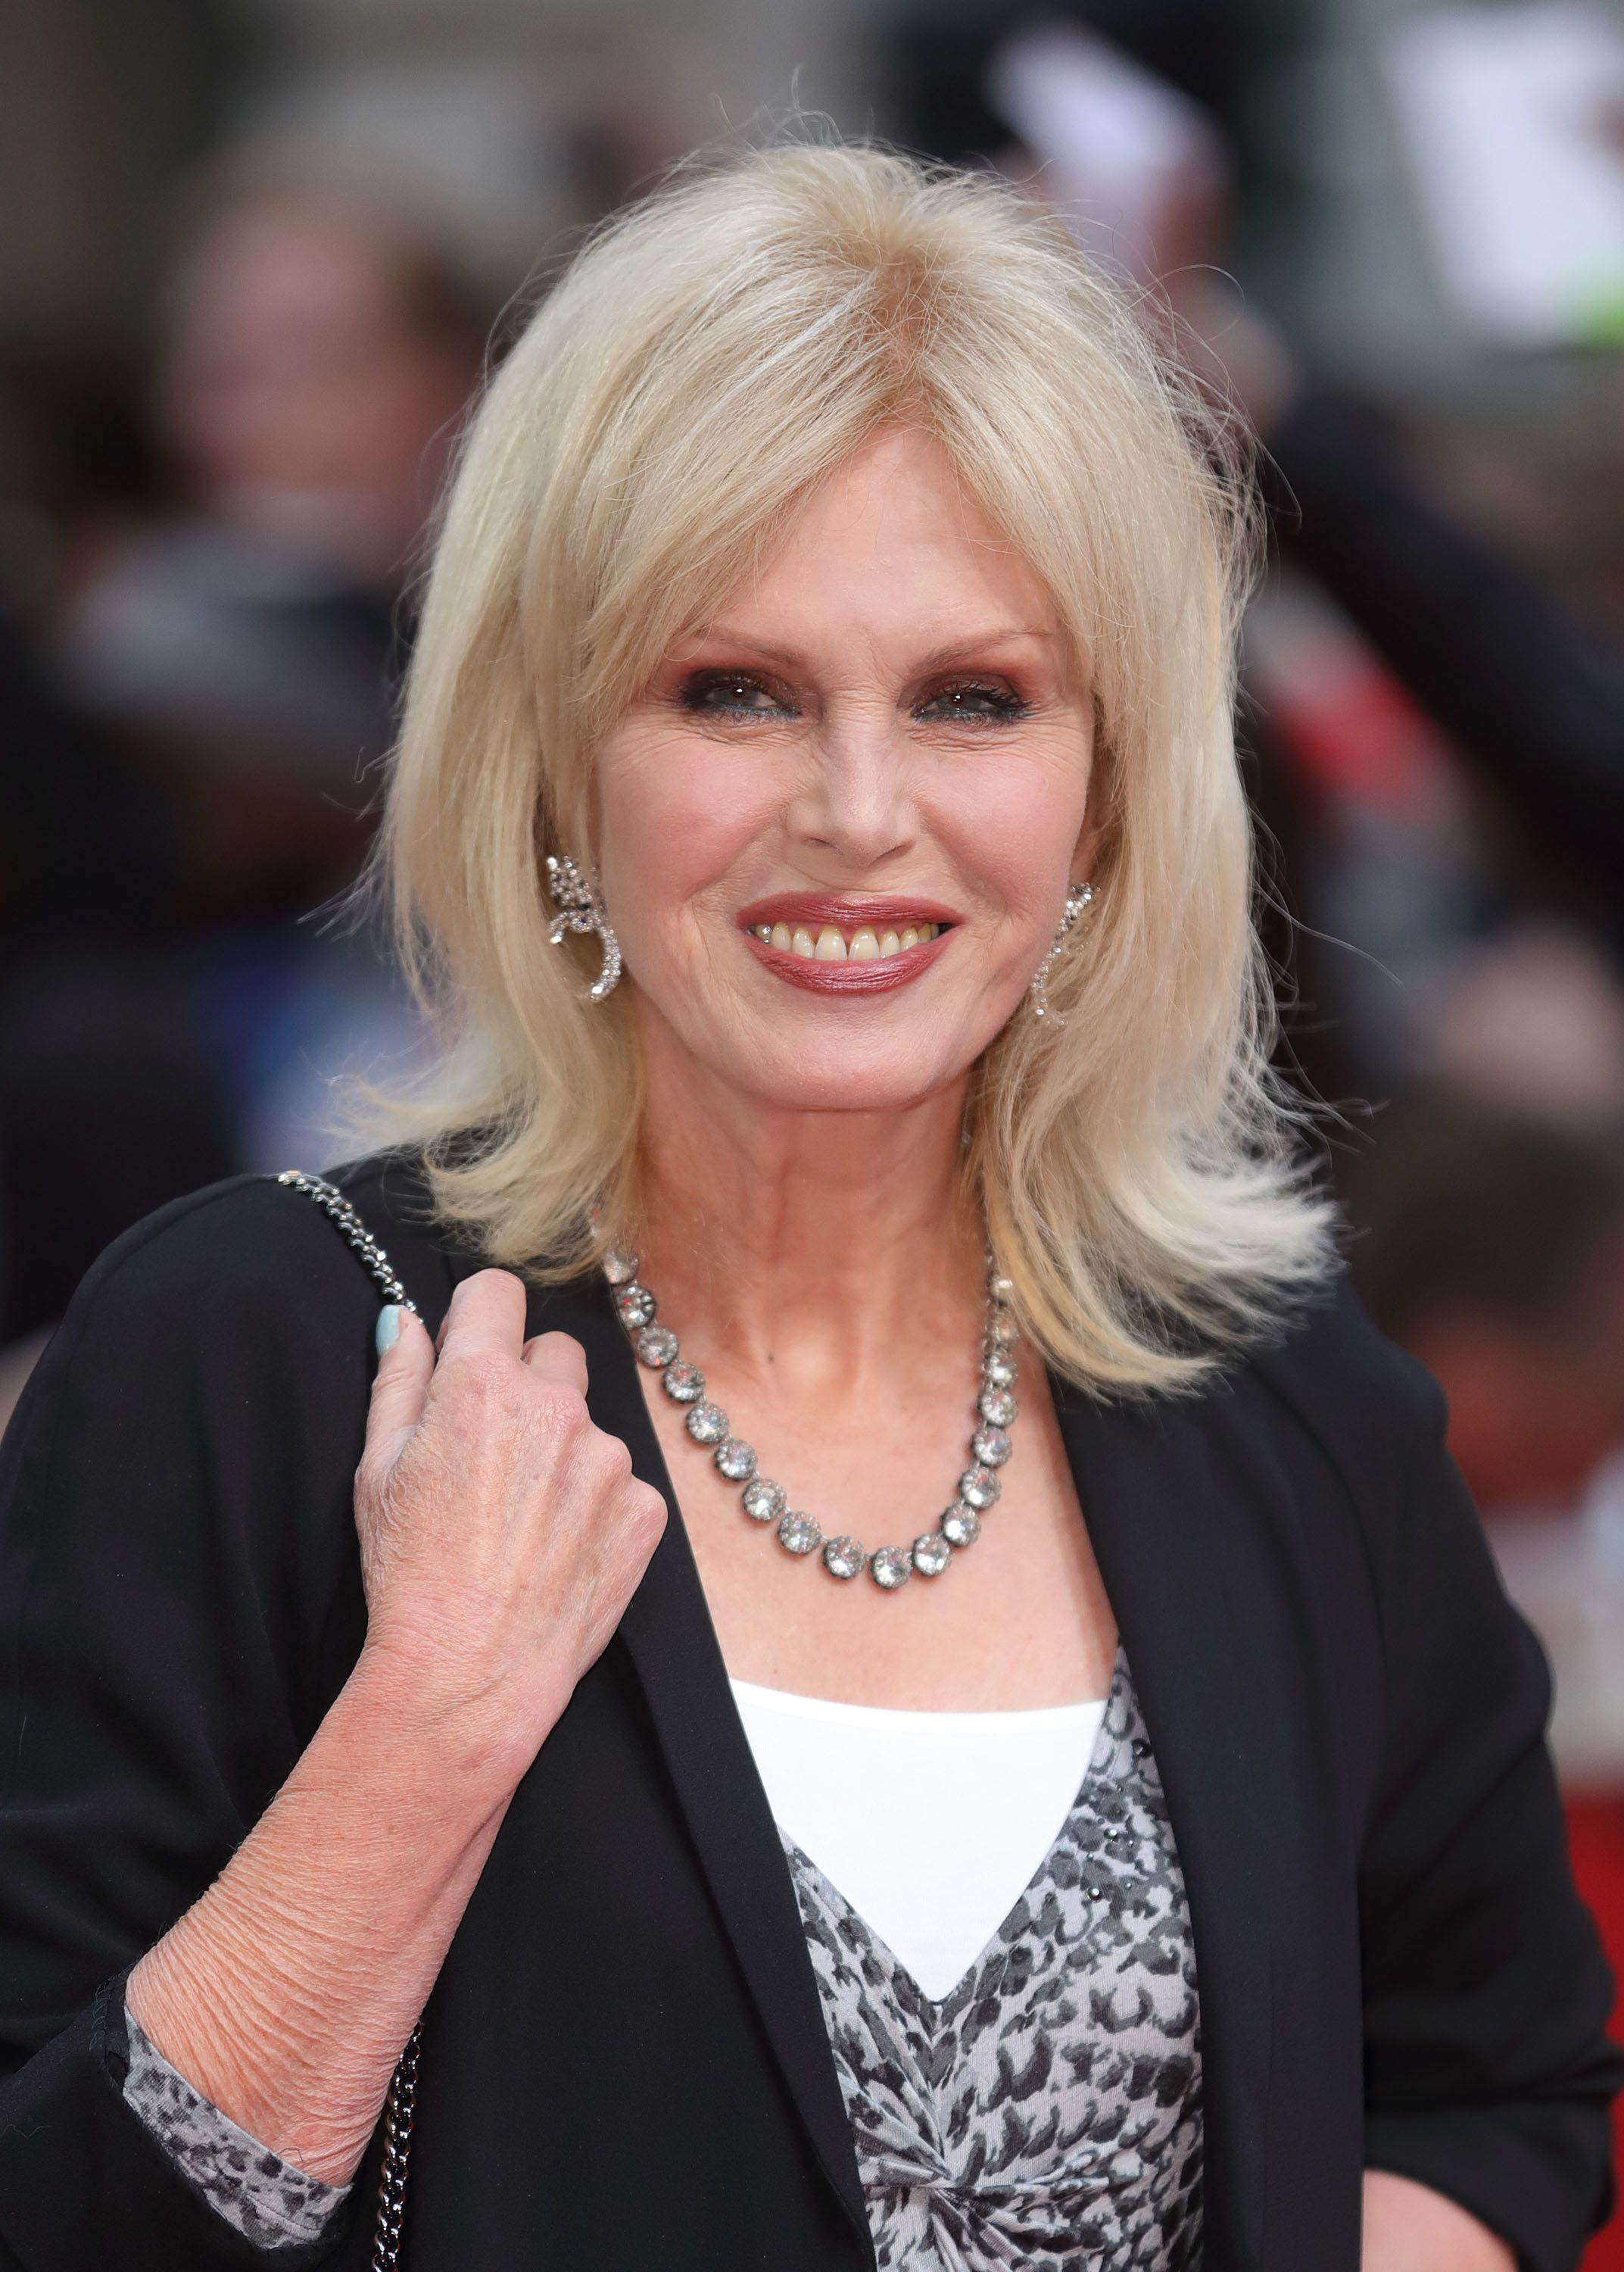 Joanna Lumley To Receive Highest Honour At This Year's TV